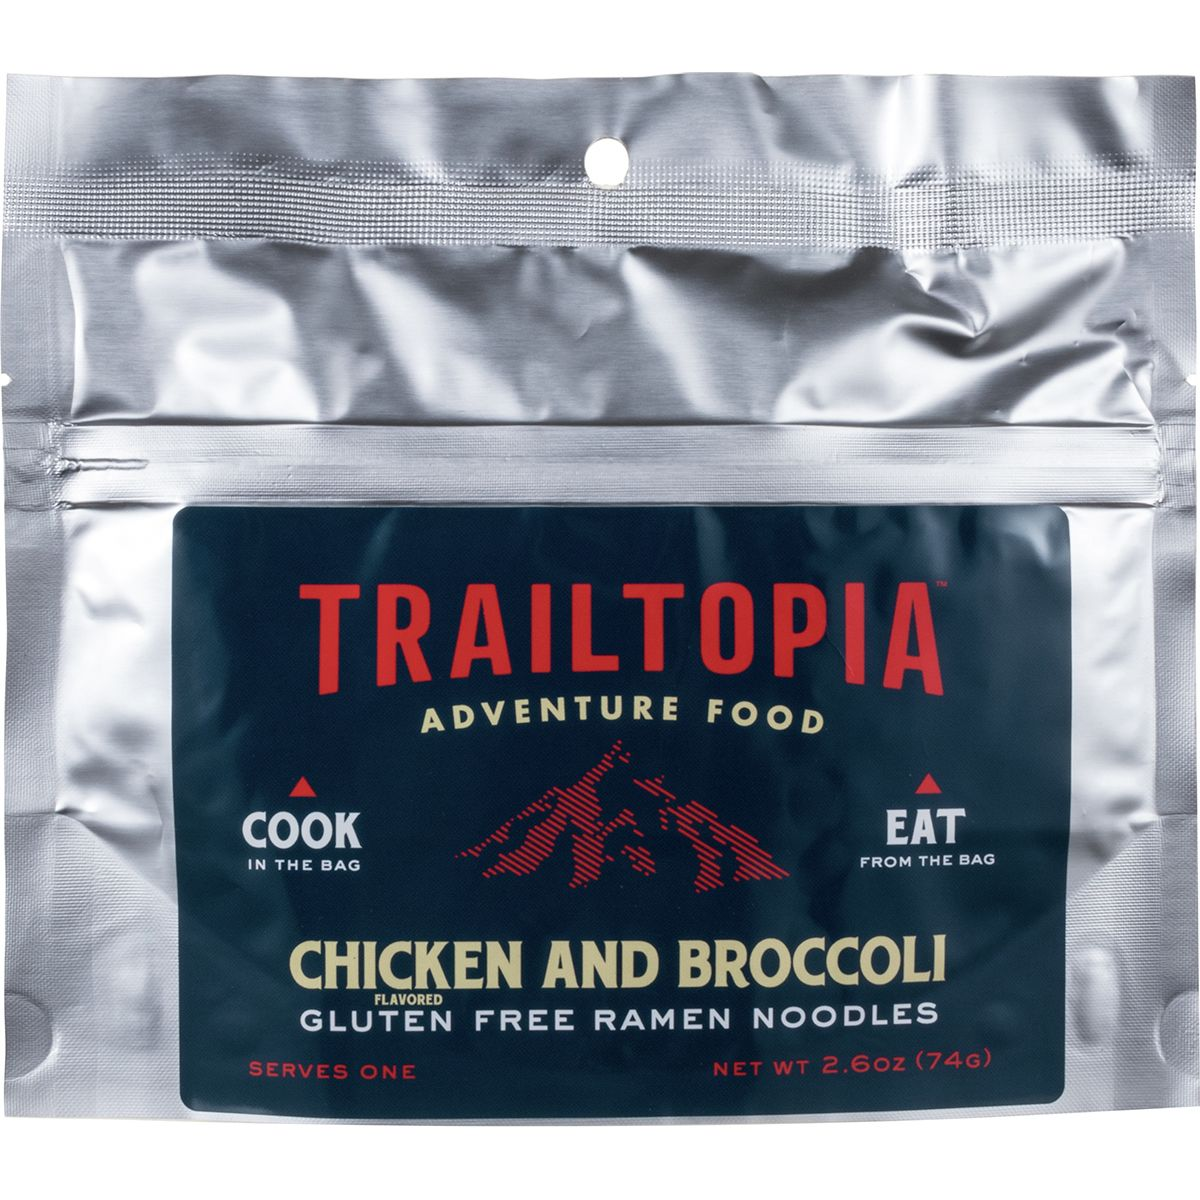 Trailtopia Chicken and Broccoli Ramen Noodles